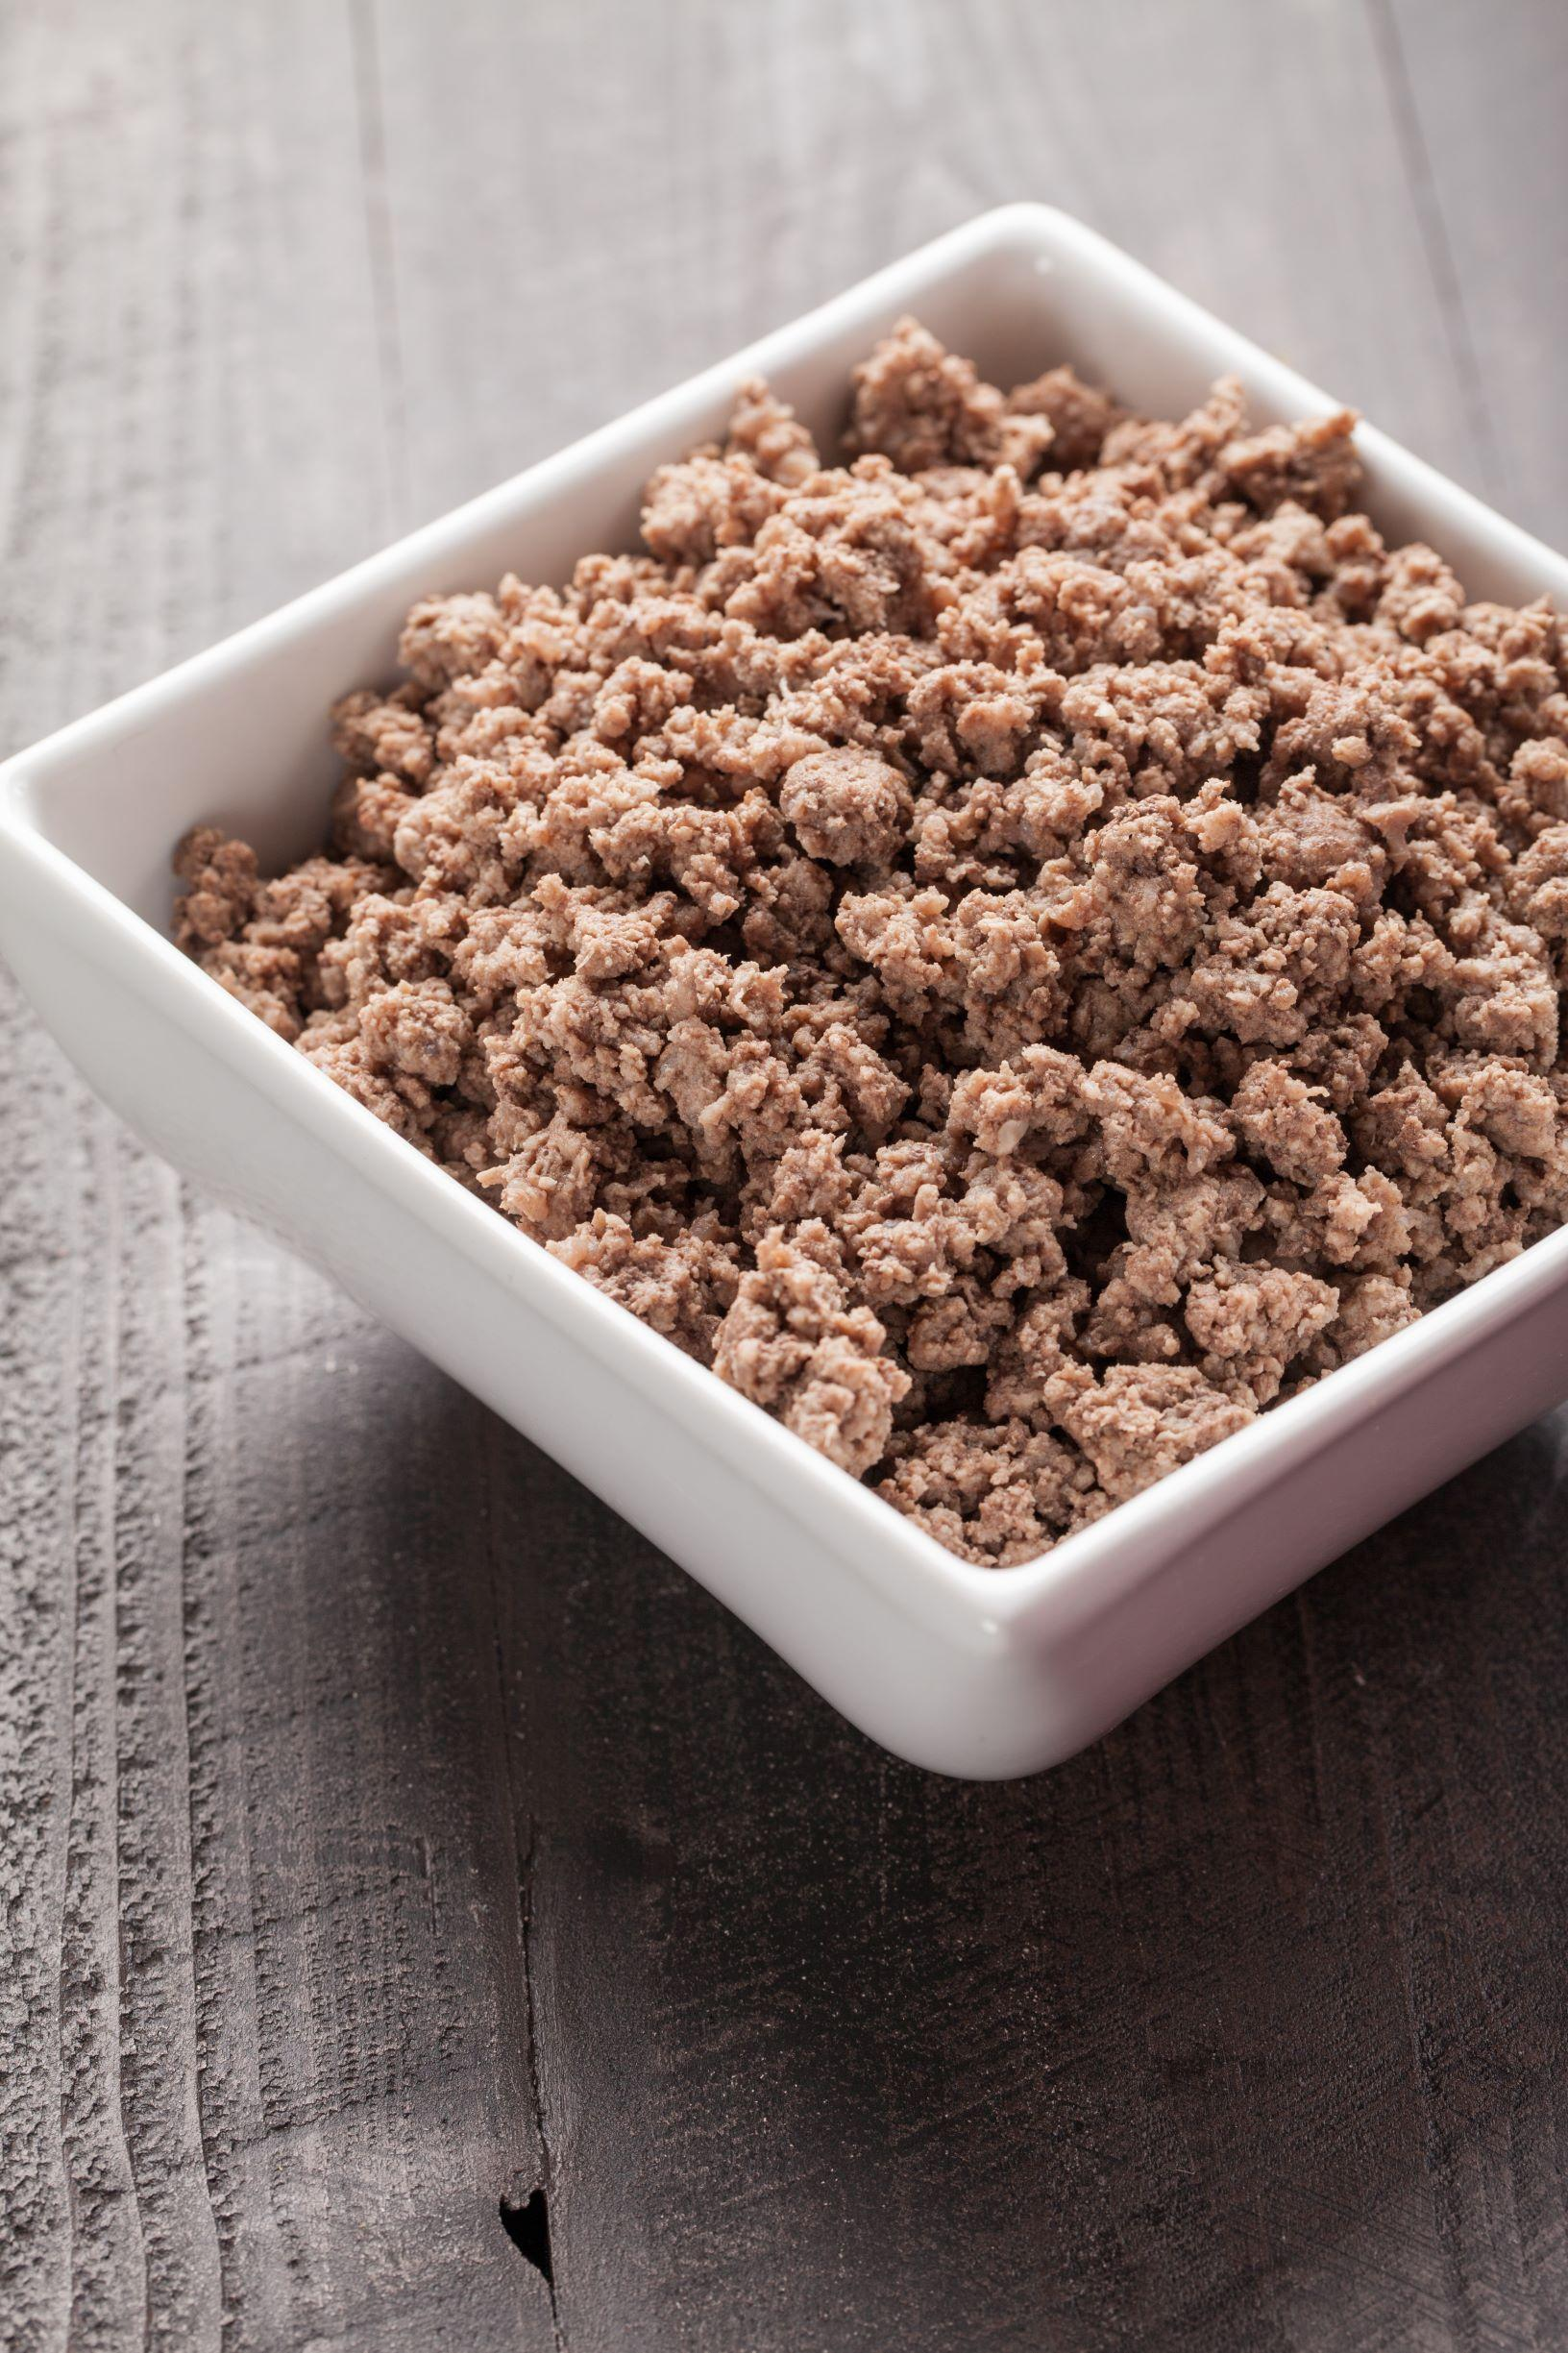 Cooked Ground Beef